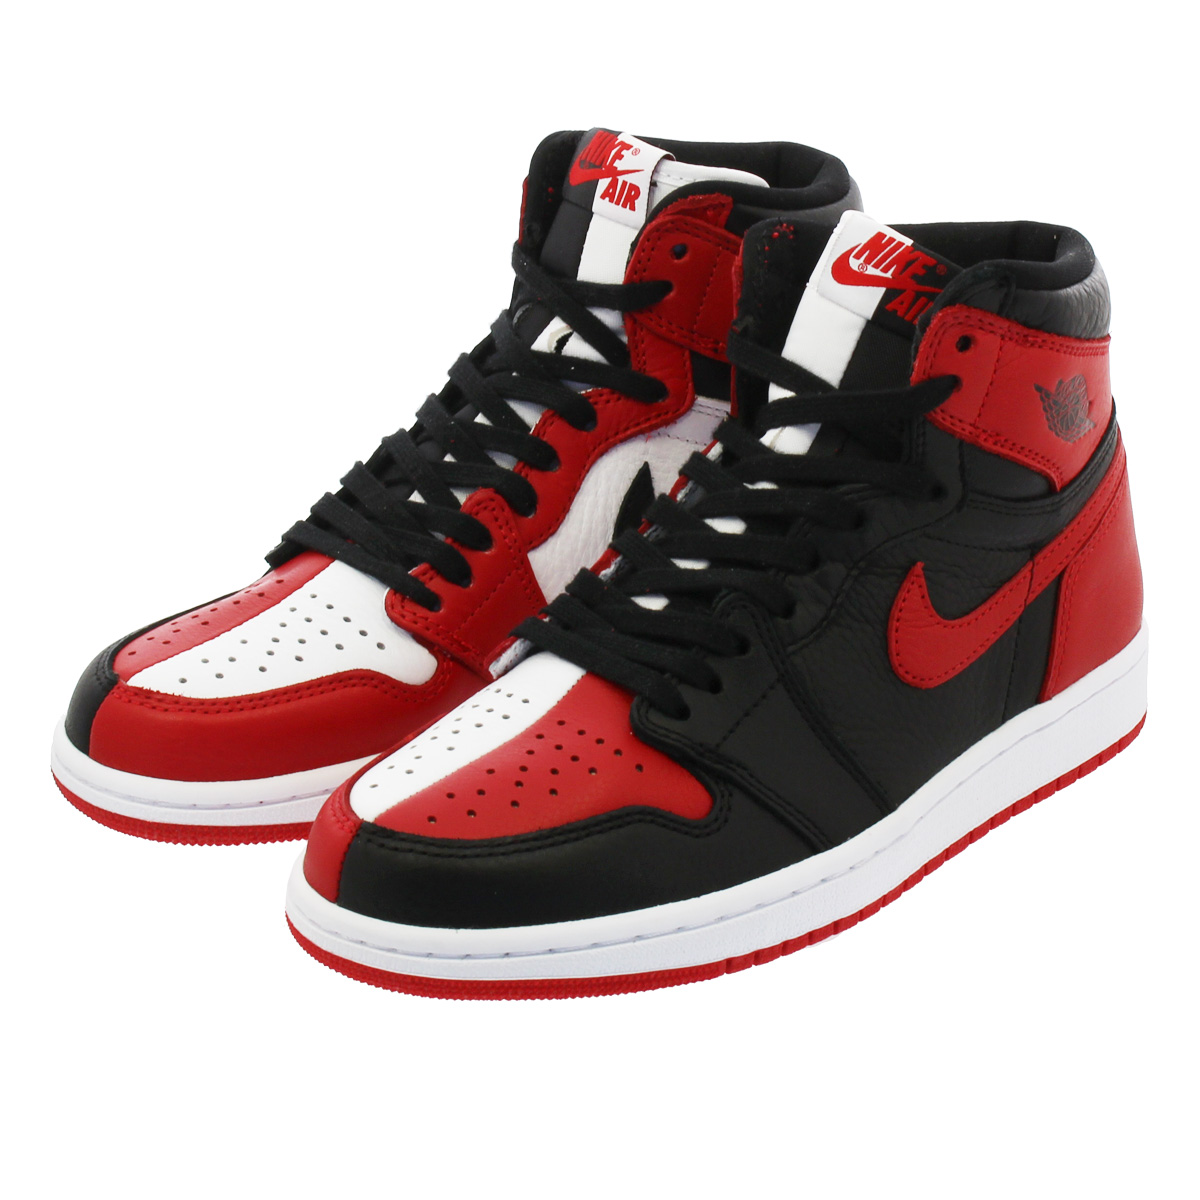 NIKE AIR JORDAN 1 RETRO HIGH OG 【HOMAGE TO HOME】 ナイキ エア ジョーダン 1 レトロ ハイ OG BLACK/WHITE/UNIVERSITY RED 861428-061